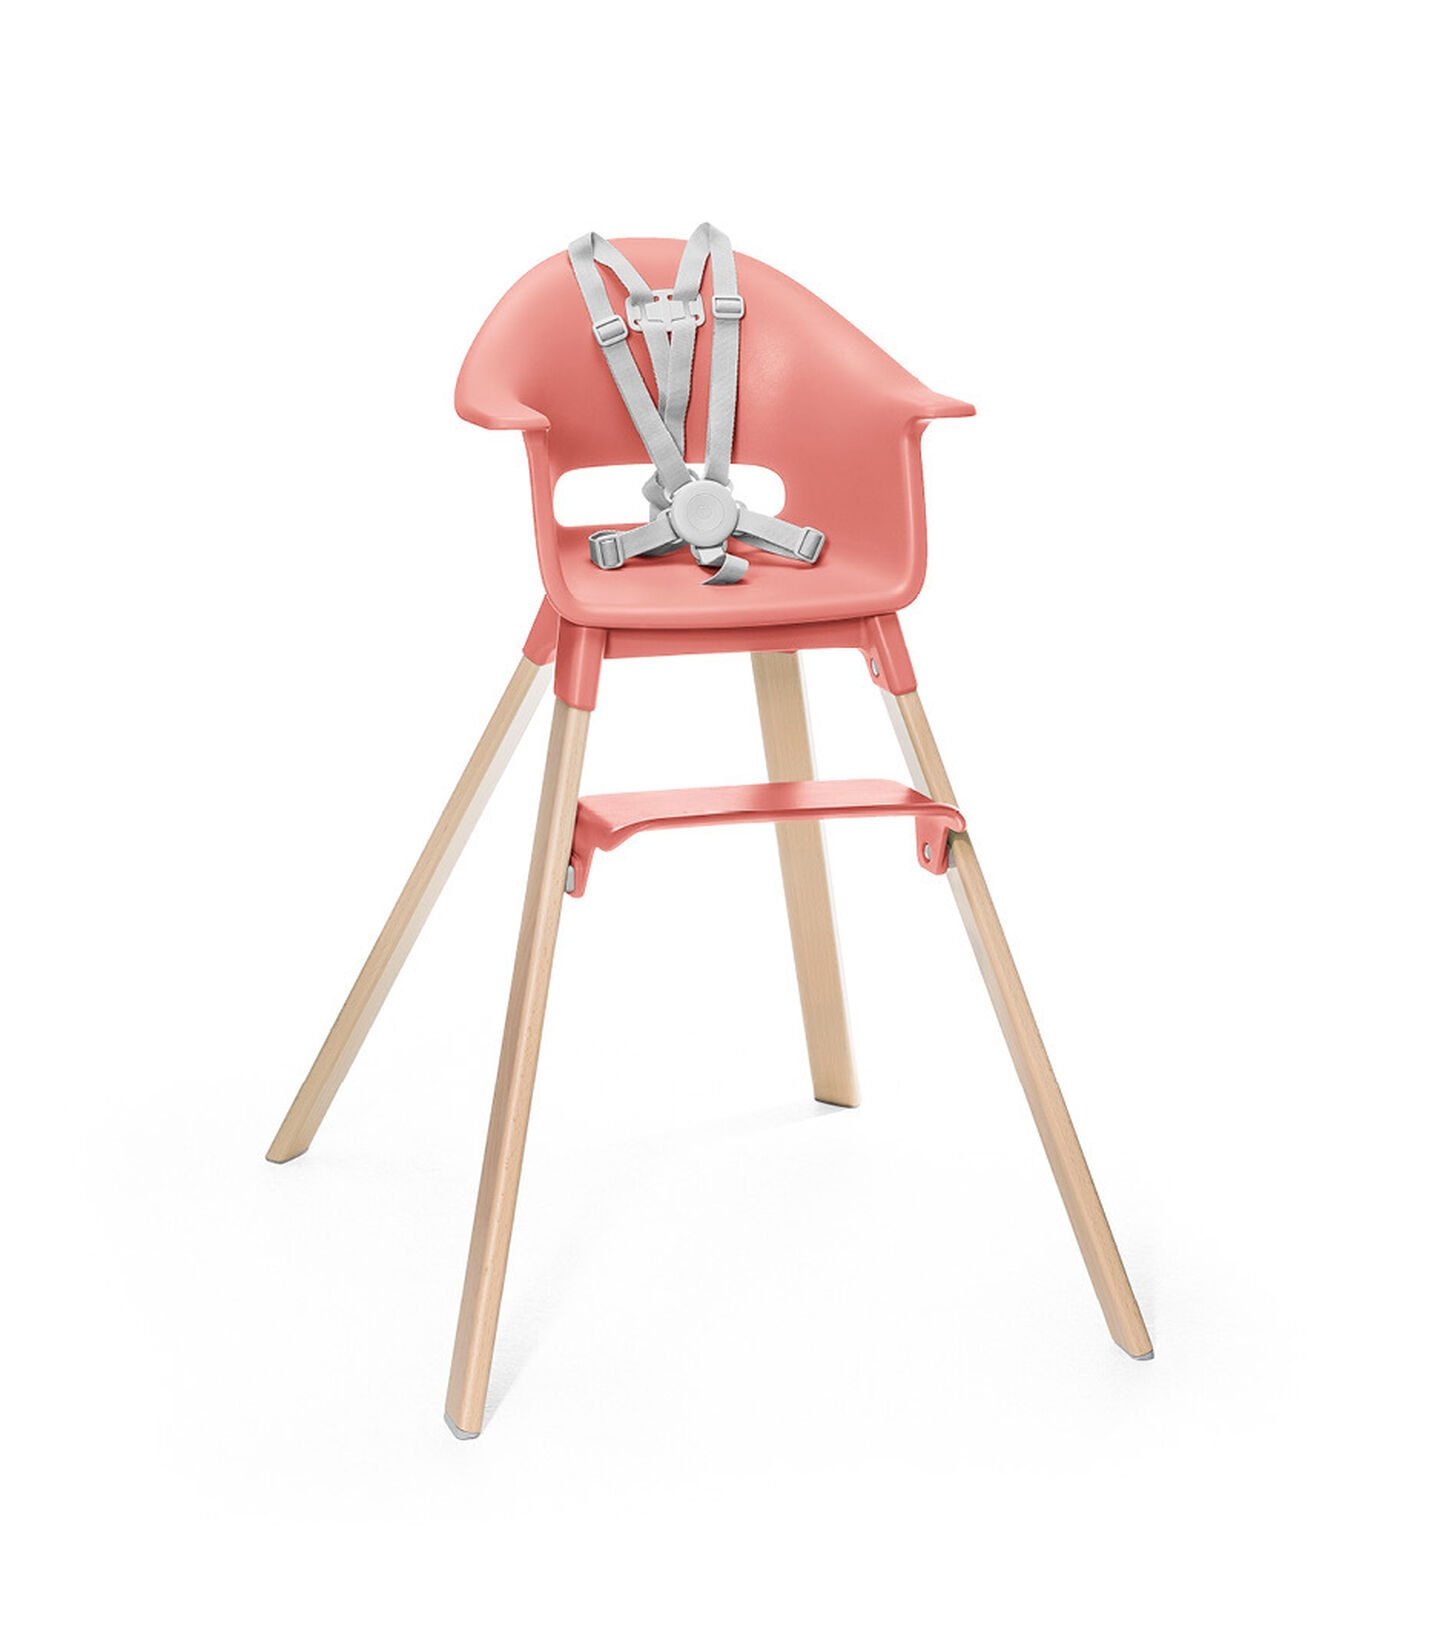 Stokke® Clikk™ High Chair. Natural Beech wood and Sunny Coral plastic parts. Stokke® Harness attached. Footrest low.